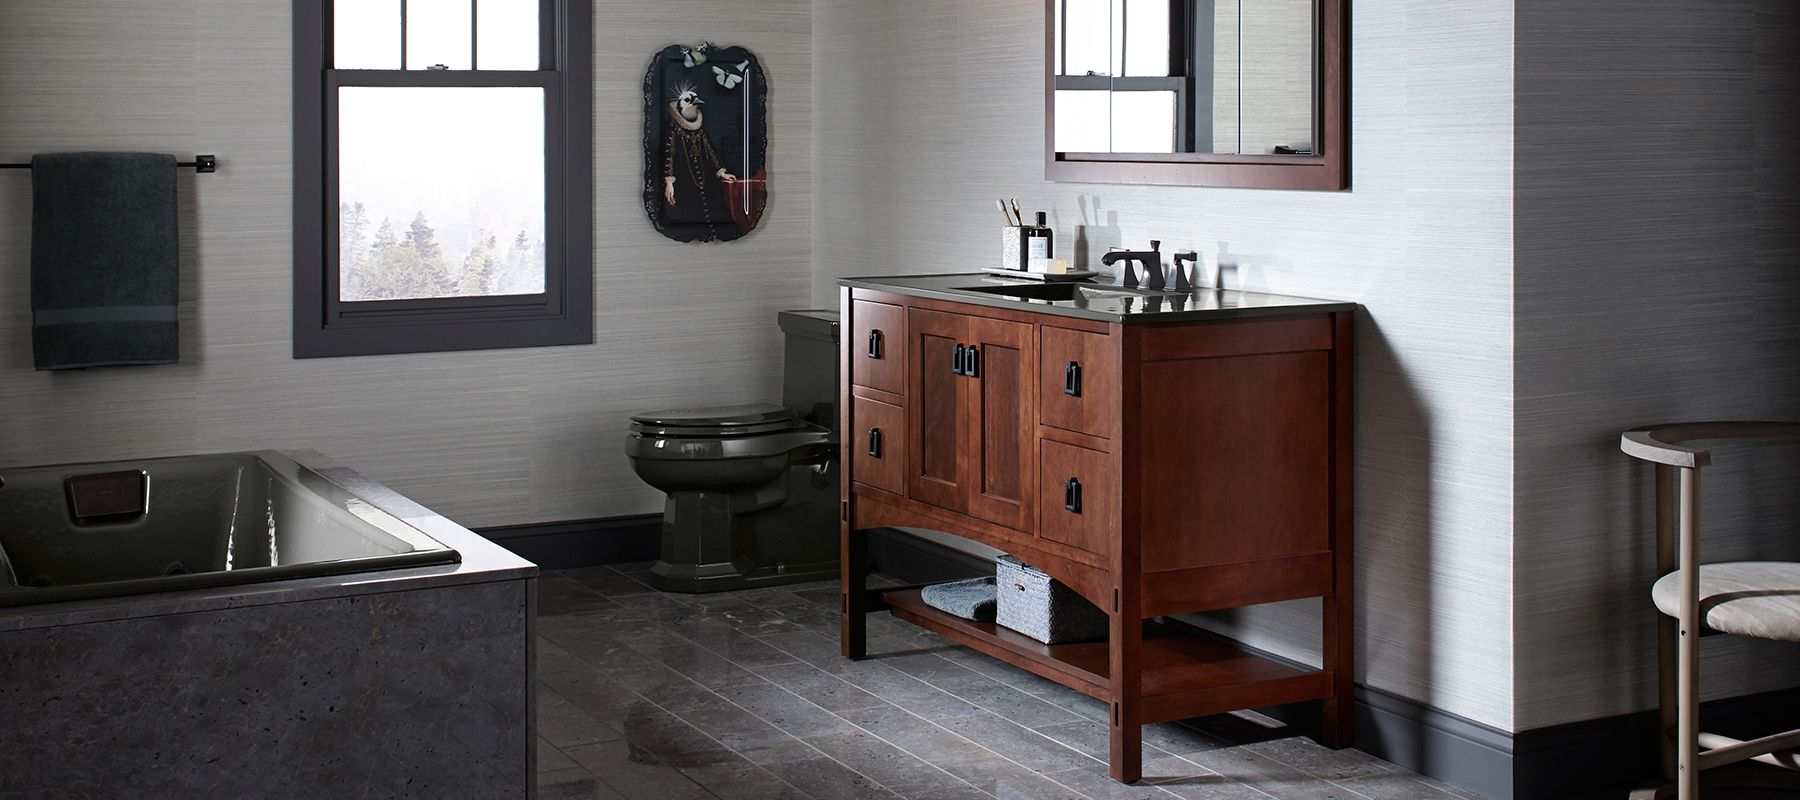 Bathroom Vanities Bathroom KOHLER - Bathroom cabinet stores near me